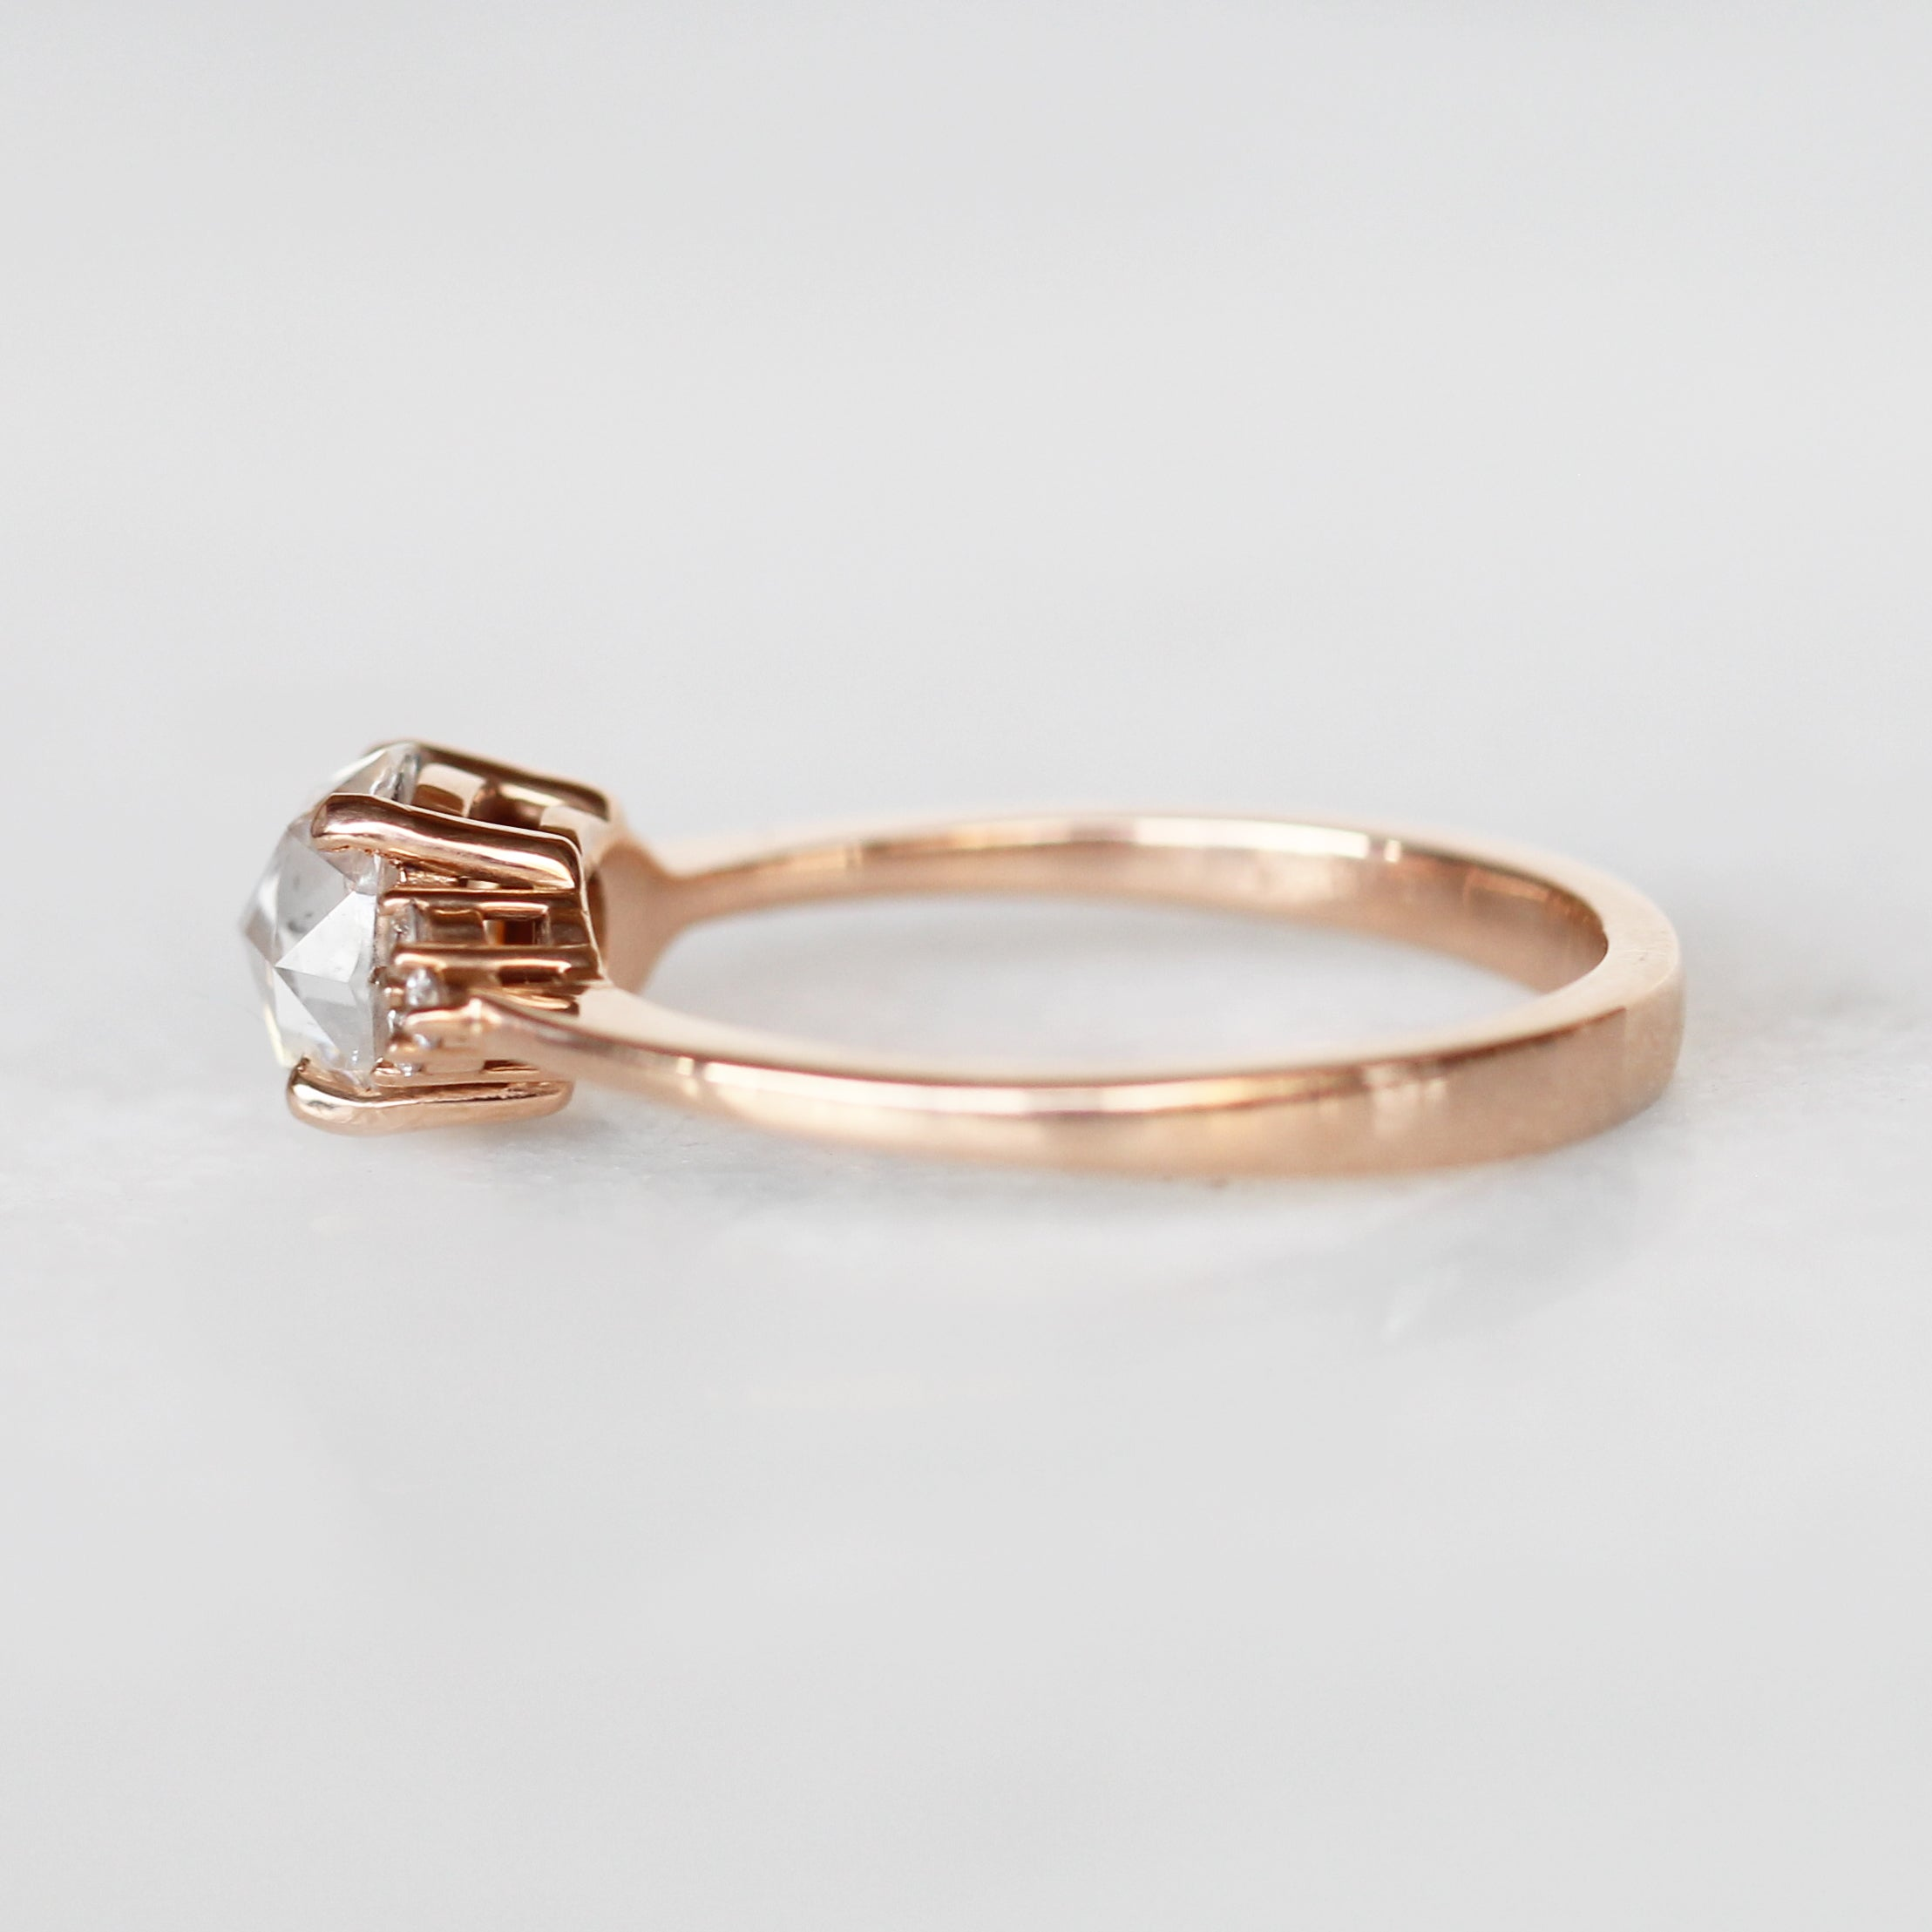 Imogene Ring with 1 Carat Round Moissanite in 10k Rose Gold- Ready to Size and Ship - Celestial Diamonds ® by Midwinter Co.